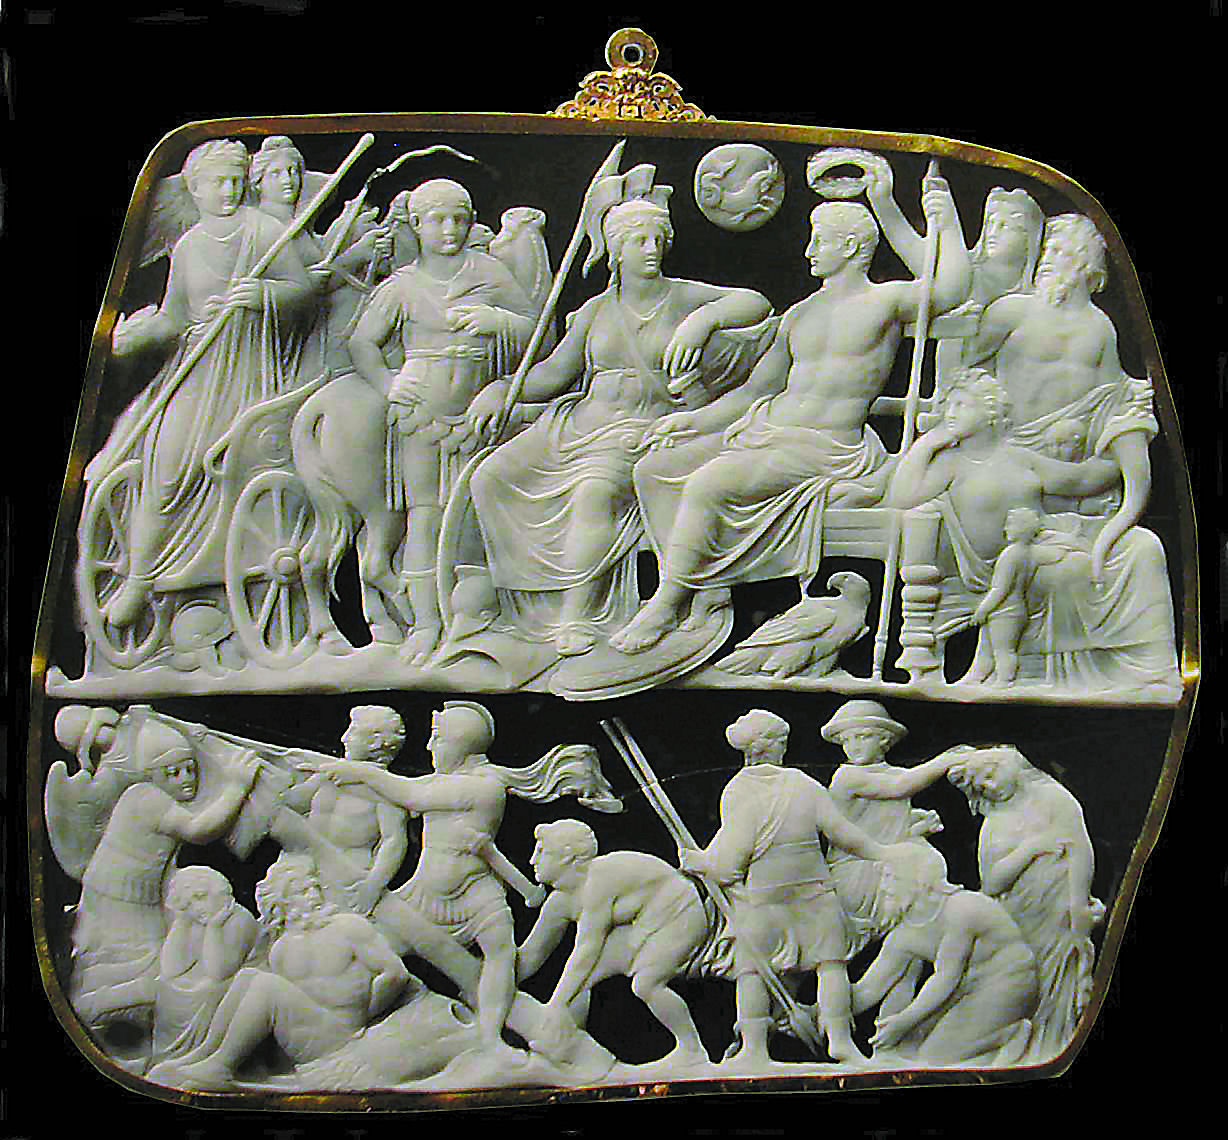 Cameos from Ancient Greece and Rome: Small but precious treasures